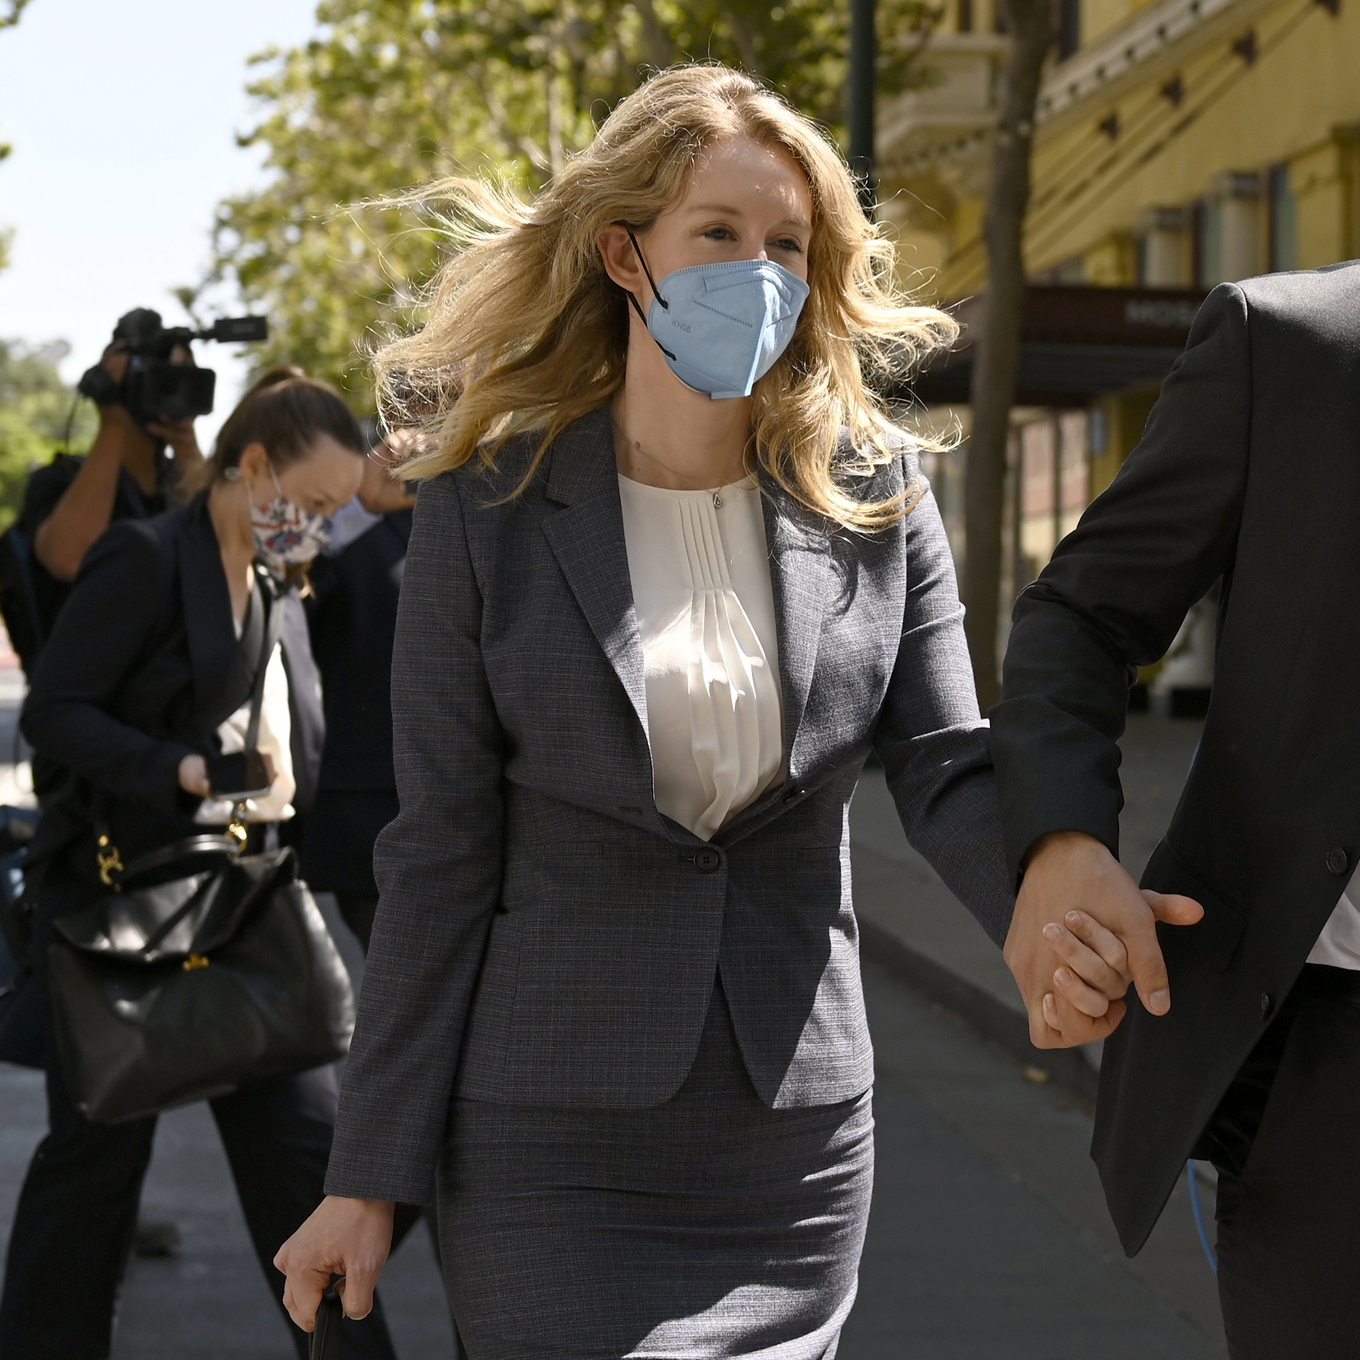 Elizabeth Holmes trial delayed after juror potentially exposed to Covid